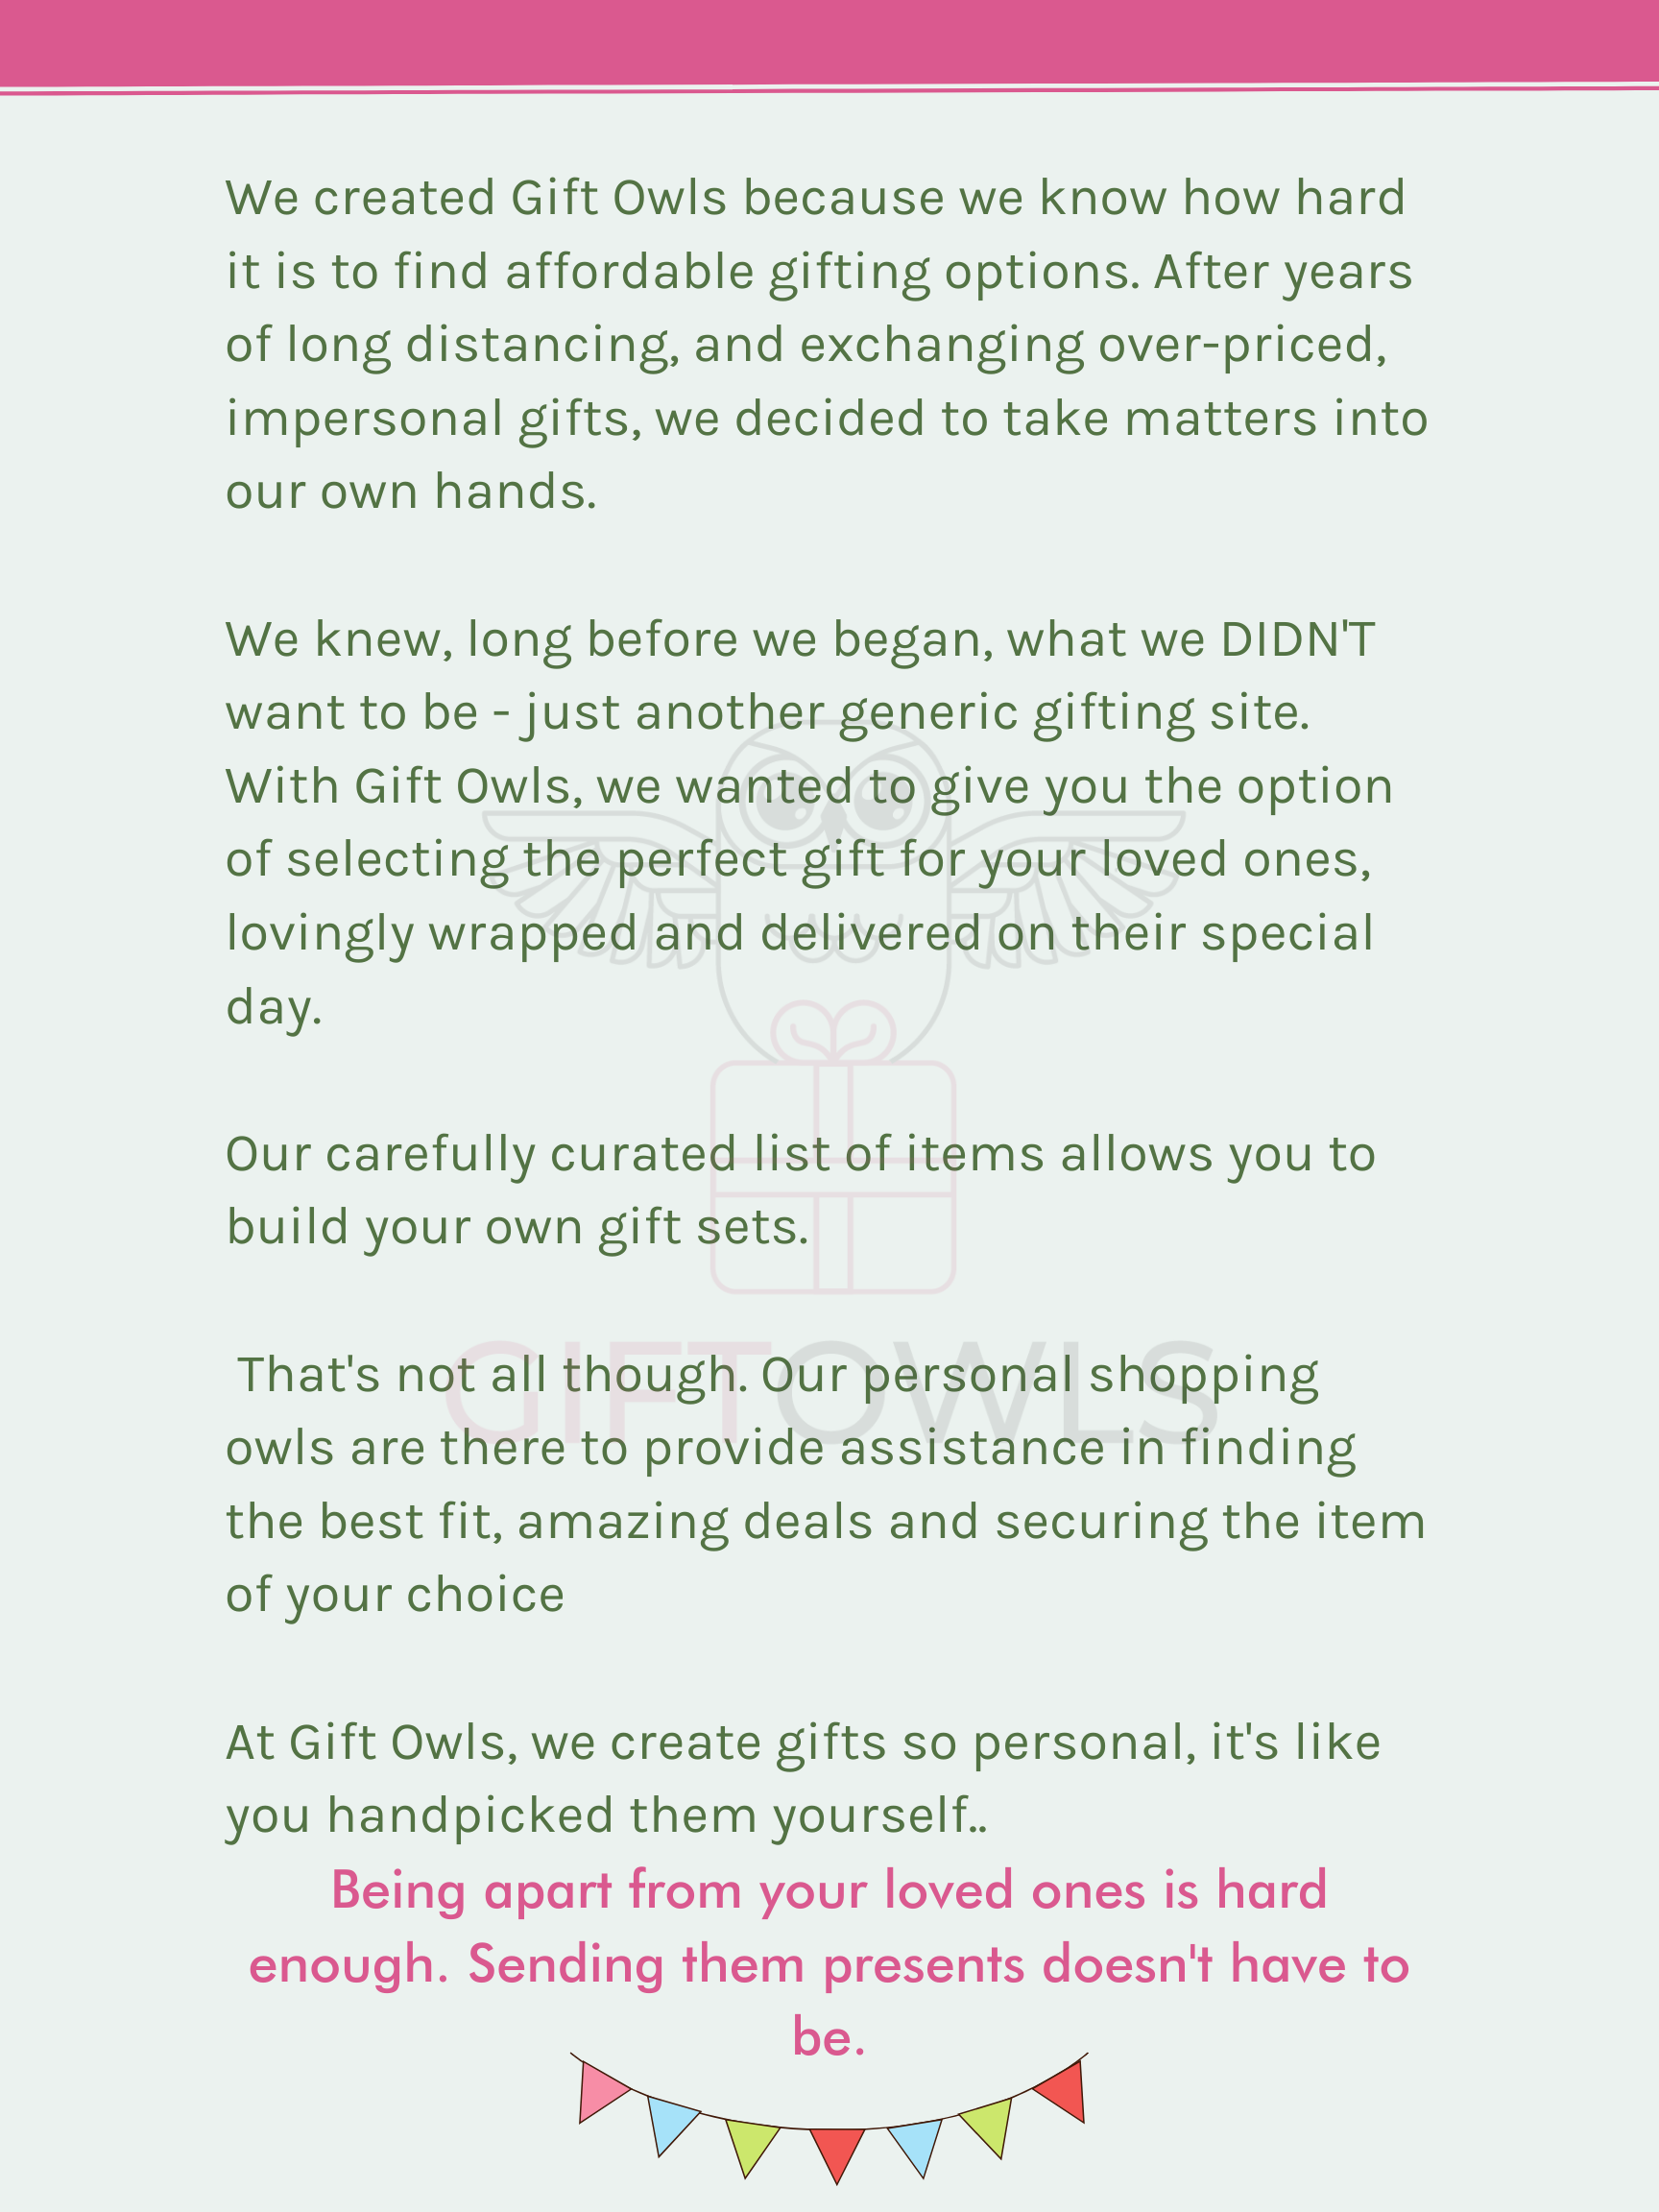 We created Gift Owls because we know how hard it is to find affordable gifting options. After years of long distancing, and exchanging over-priced, impersonal gifts, we decided to take matters into our own hands. At Gift Owls, we create gifts so personal, it's like you handpicked them yourself.  We knew, long before we began, what we DIDN'T want to be - just another generic gifting site.  With Gift Owls, we wanted to give you the option of selecting the perfect gift for your loved ones, lovingly wrapped and delivered on their special day.  Our carefully curated list of items allows you to build your own gift sets.  That's not all though. Our personal shopping owls are there to provide assistance in finding the best fit, amazing deals and securing the item of your choice.     Being apart from your loved ones is hard enough. Sending them presents doesn't have to be.